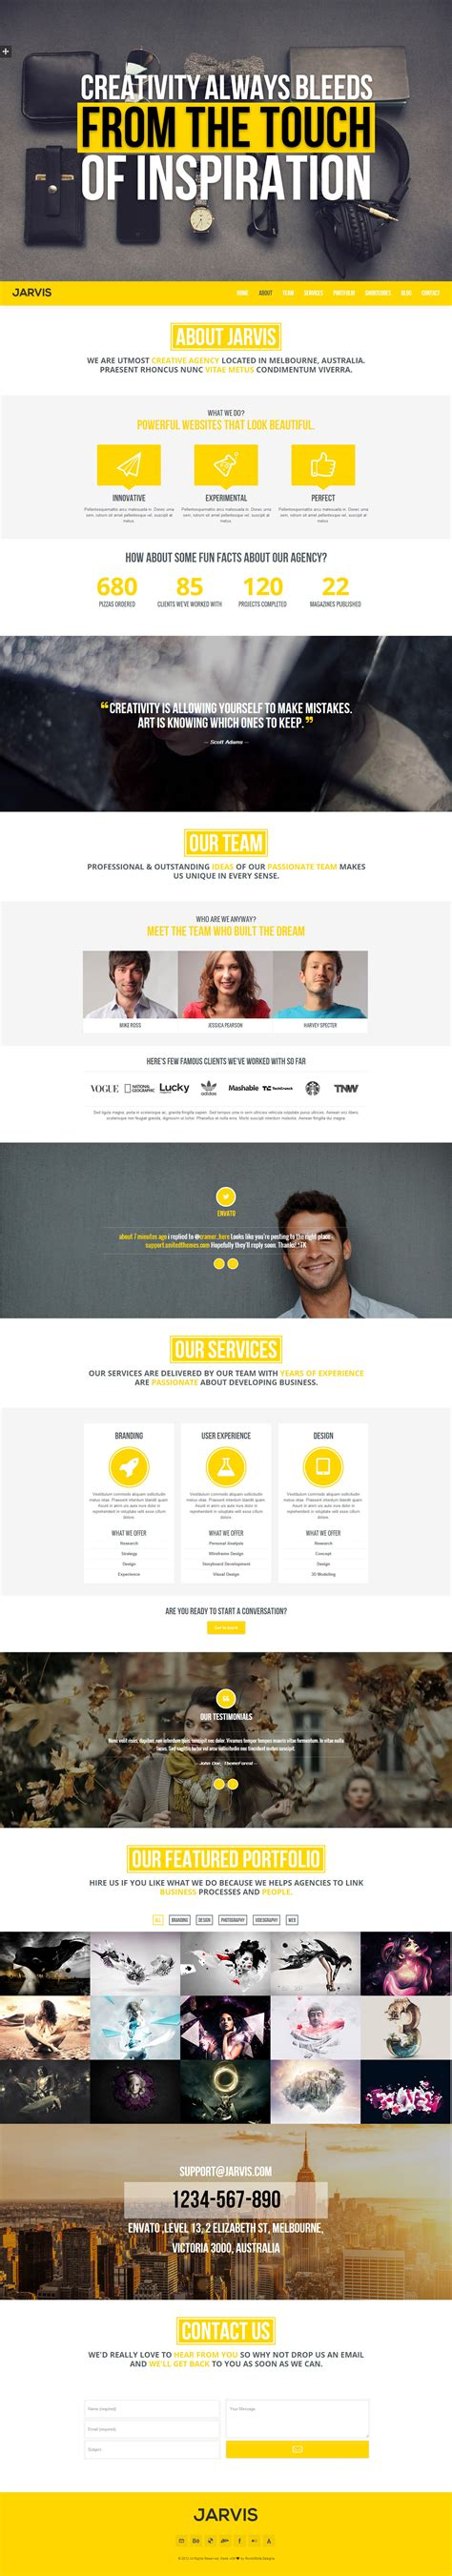 themeforest jarvis jarvis onepage parallax theme by rocknrolladesigns